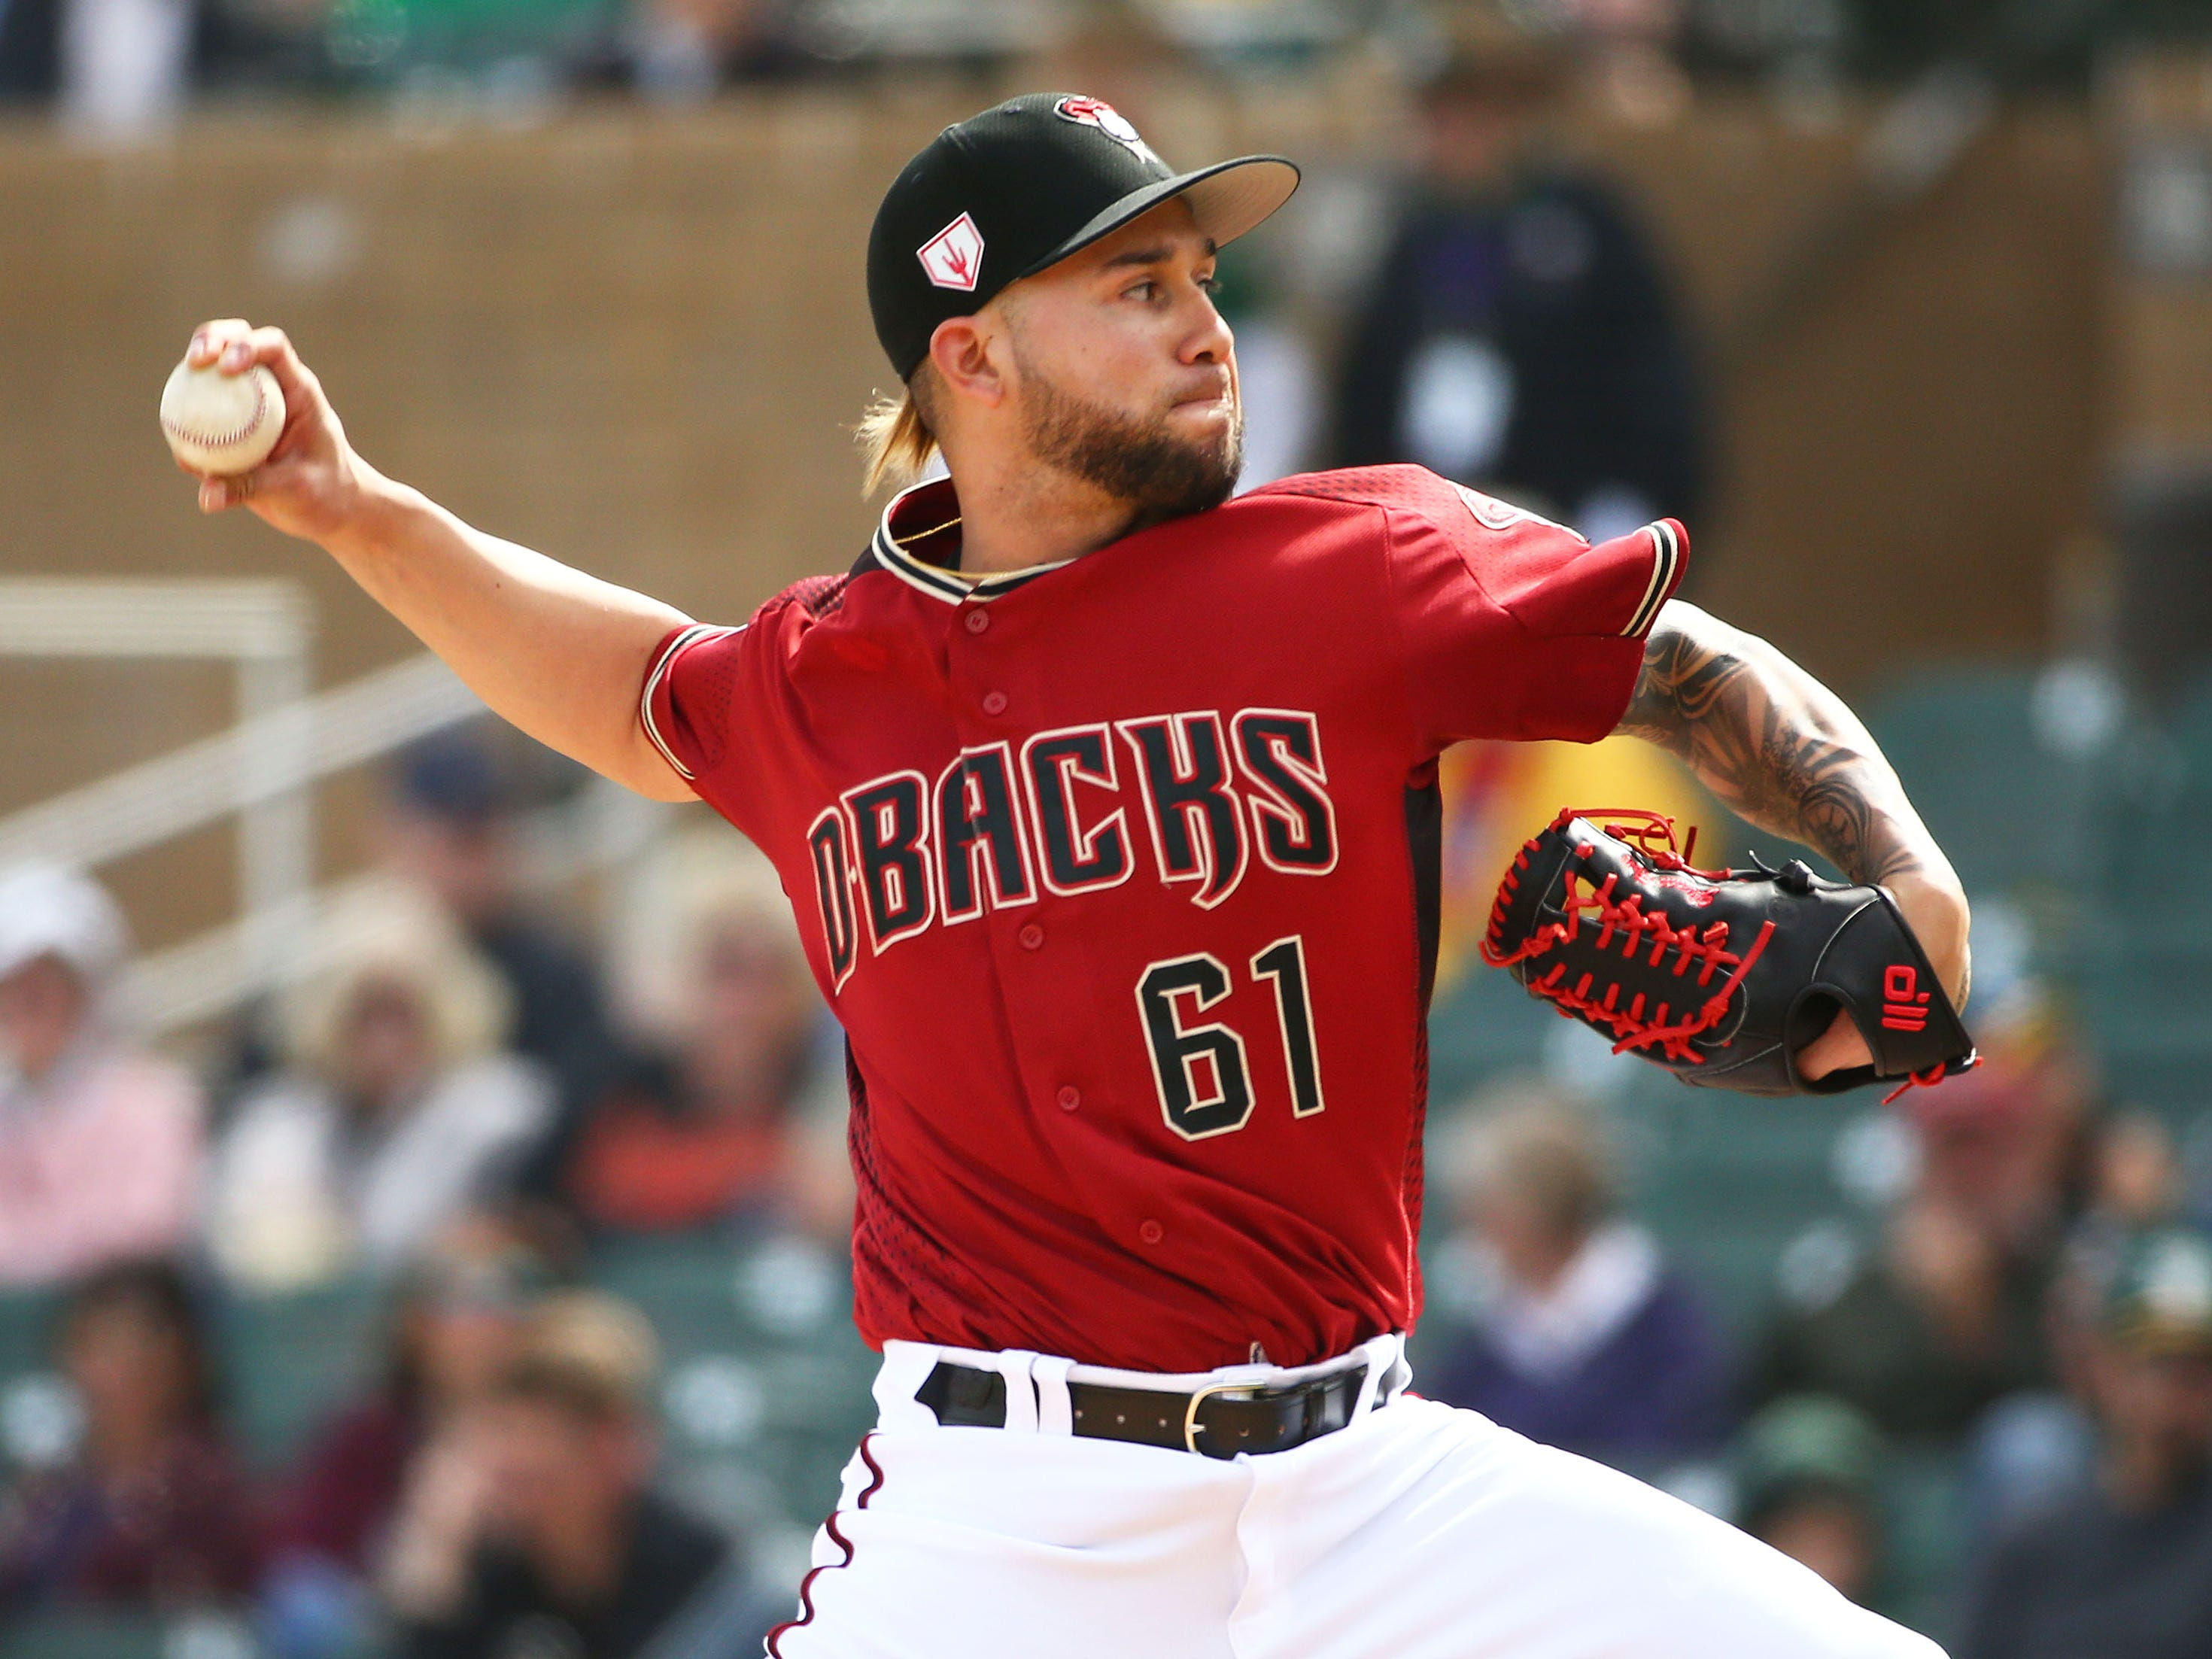 Arizona Diamondbacks pitcher Silvino Bracho (61) throws to the Oakland A's in the third inning during a spring training game on Feb. 25, 2019 at Salt River Fields in Scottsdale, Ariz.